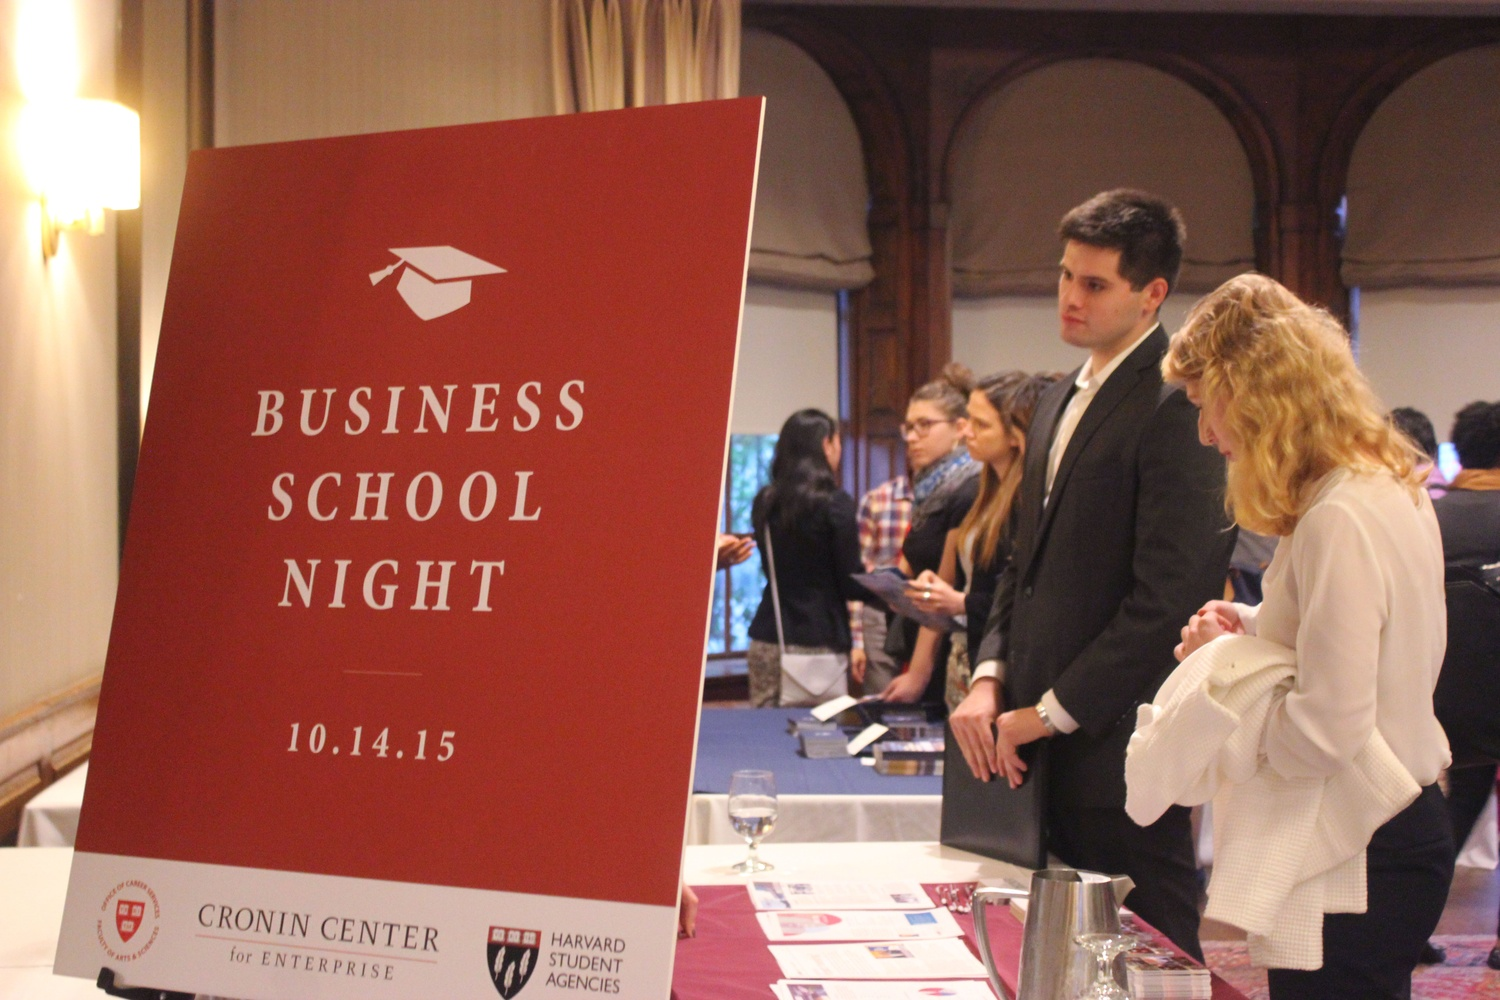 Students interested in applying to business school converse with recruiters from various universities at the Cronin Center and HSA's Business School Night.